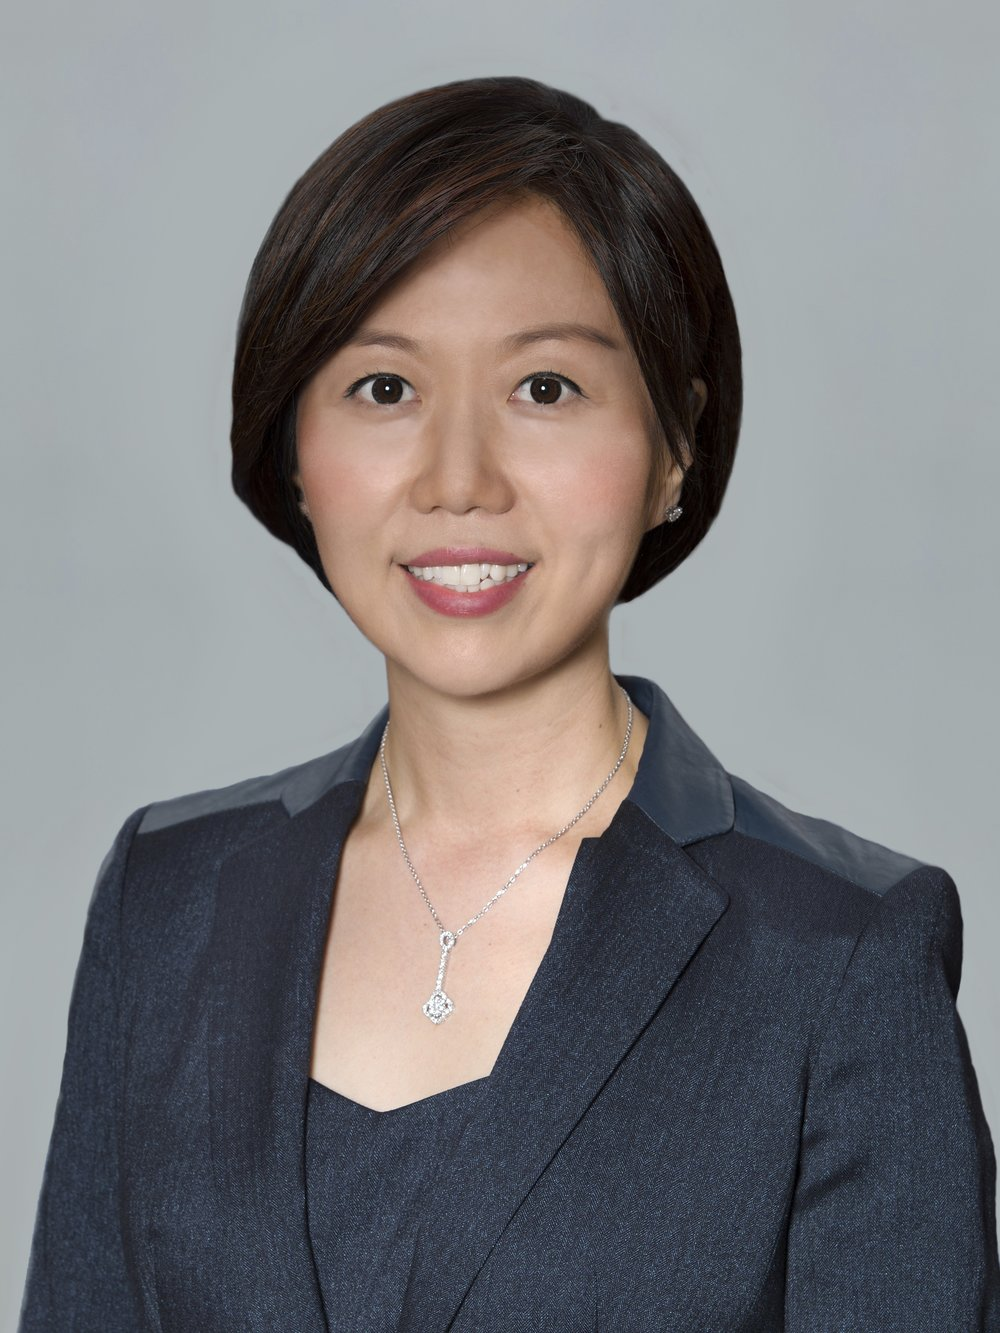 Helen Hwang - Helen Hwang is Senior Executive Managing Director at Meridian Investment Sales, LLC and is head of the Institutional Investment Sales Group. Ms. Hwang has executed over 70 institutional sales and recapitalization transactions exceeding $25 billion in value. Prior to joining Meridian, Ms. Hwang spent 16 years at Cushman & Wakefield as an Executive Vice President, where she worked on several unprecedented complex assignments, including 1865 Broadway, 22 River Terrace, 101 Murray Street, One Court Square, 510 Madison Avenue, 511 Fifth Avenue, the MetLife Building at 200 Park Avenue, 666 Fifth Avenue, the portfolio sale of Park Avenue and 850 Third Avenue, and the ground leases under 625 Madison Avenue, 2 Herald Square and 75 Rockefeller Center. For the sale of 88 Leonard Street, Ms. Hwang was honored with the Real Estate Board of New York's highest achievement, the 2012 Most Ingenious Sales Deal of the Year (Robert T. Lawrence Memorial Award). She also set numerous pricing records in the development/redevelopment arena in Columbus Circle, Lower Manhattan, Midtown West, West Village, Upper East Side, and Brooklyn.